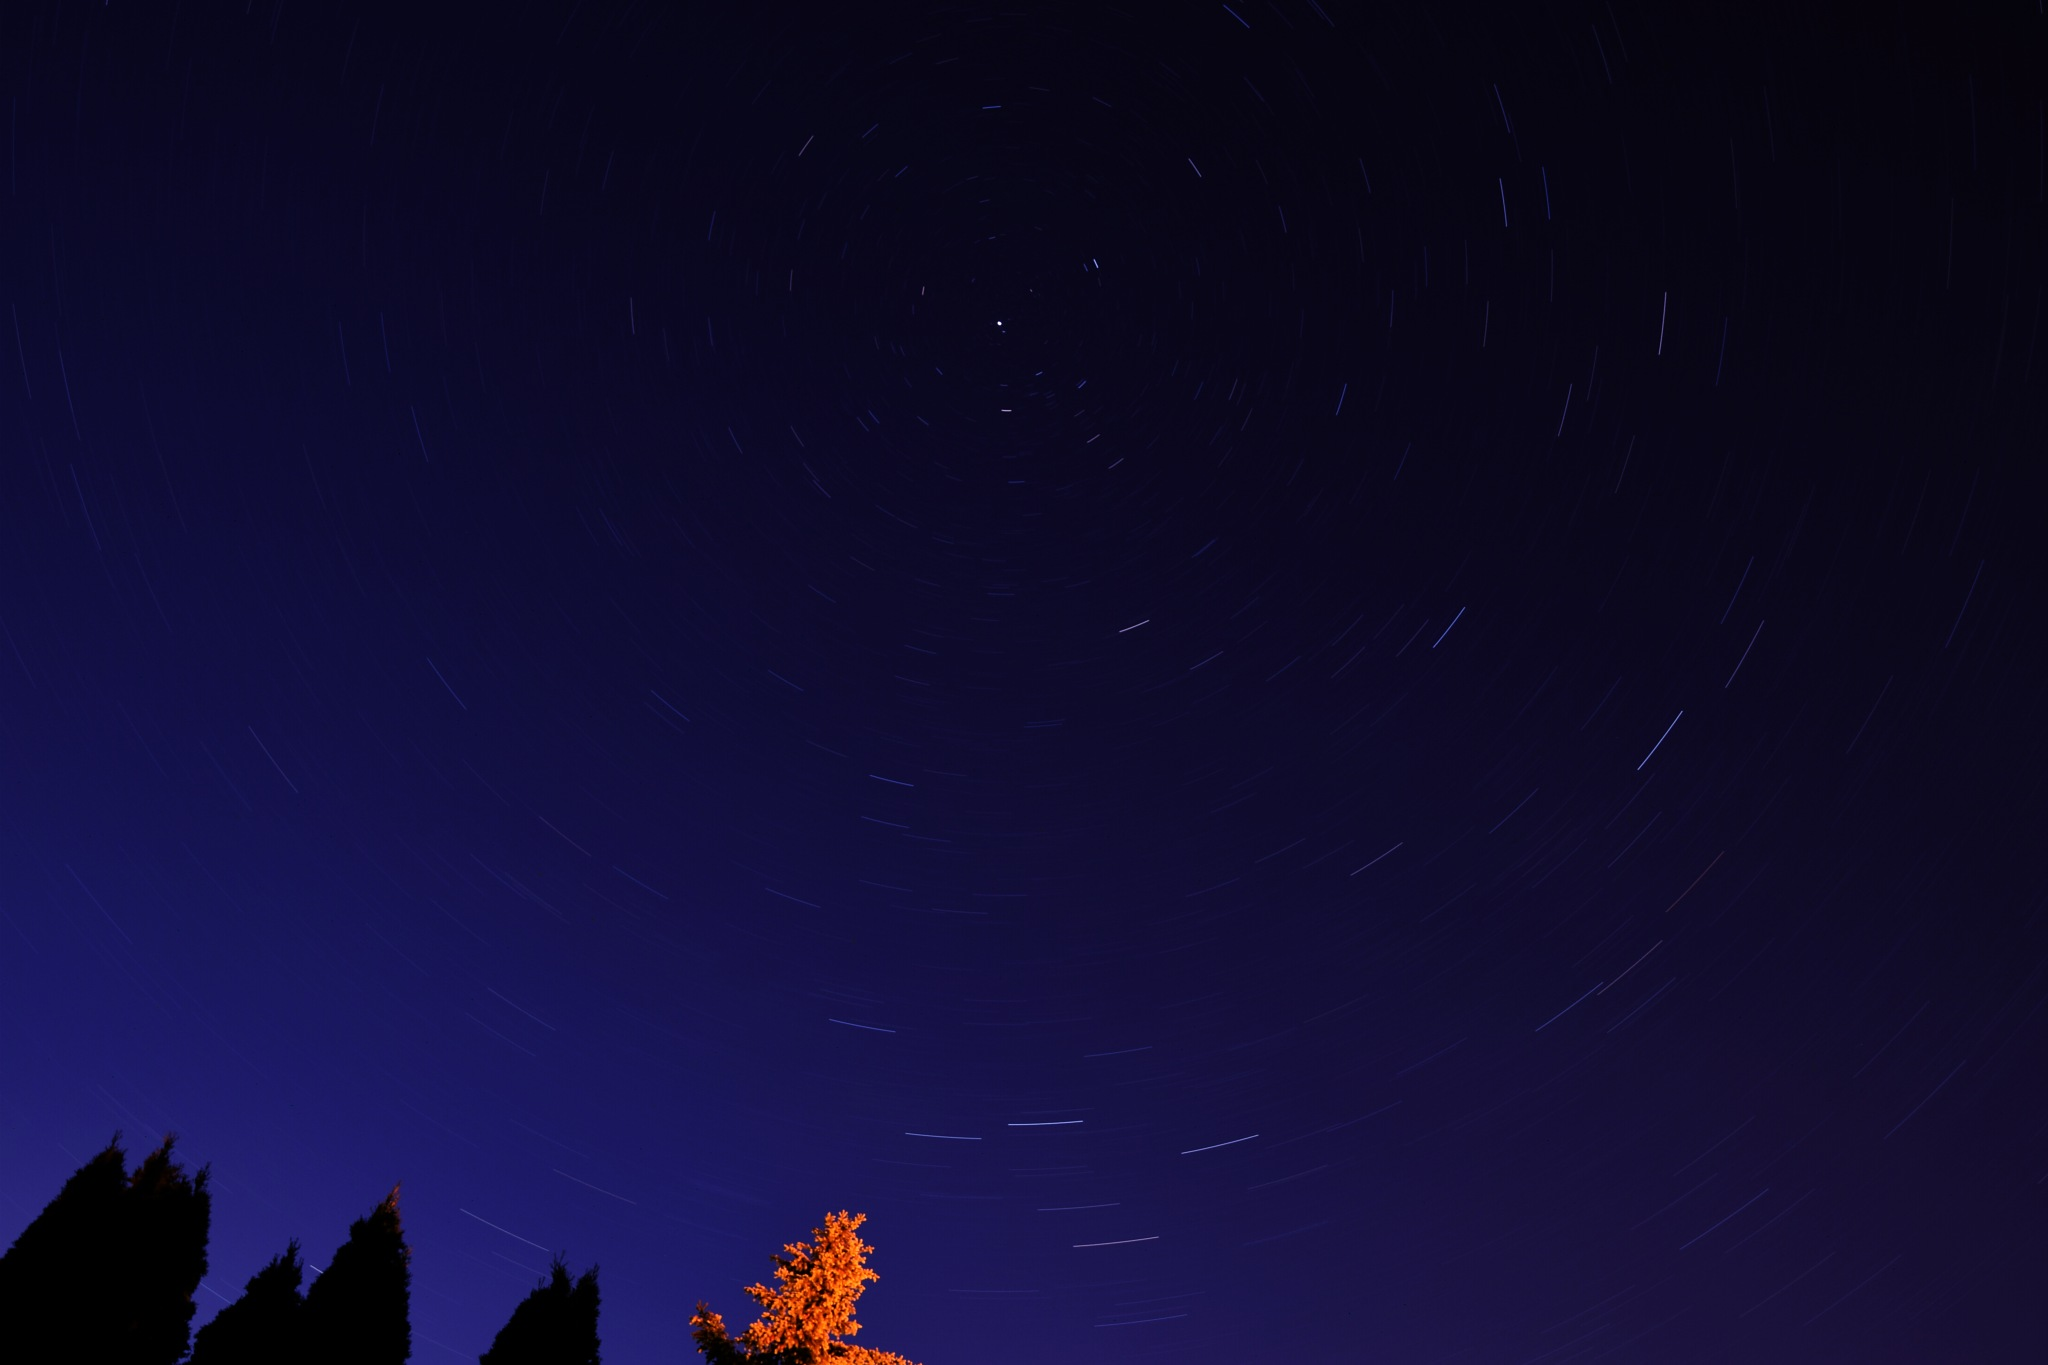 Polaris star surrounded by other stars. by Simon RD